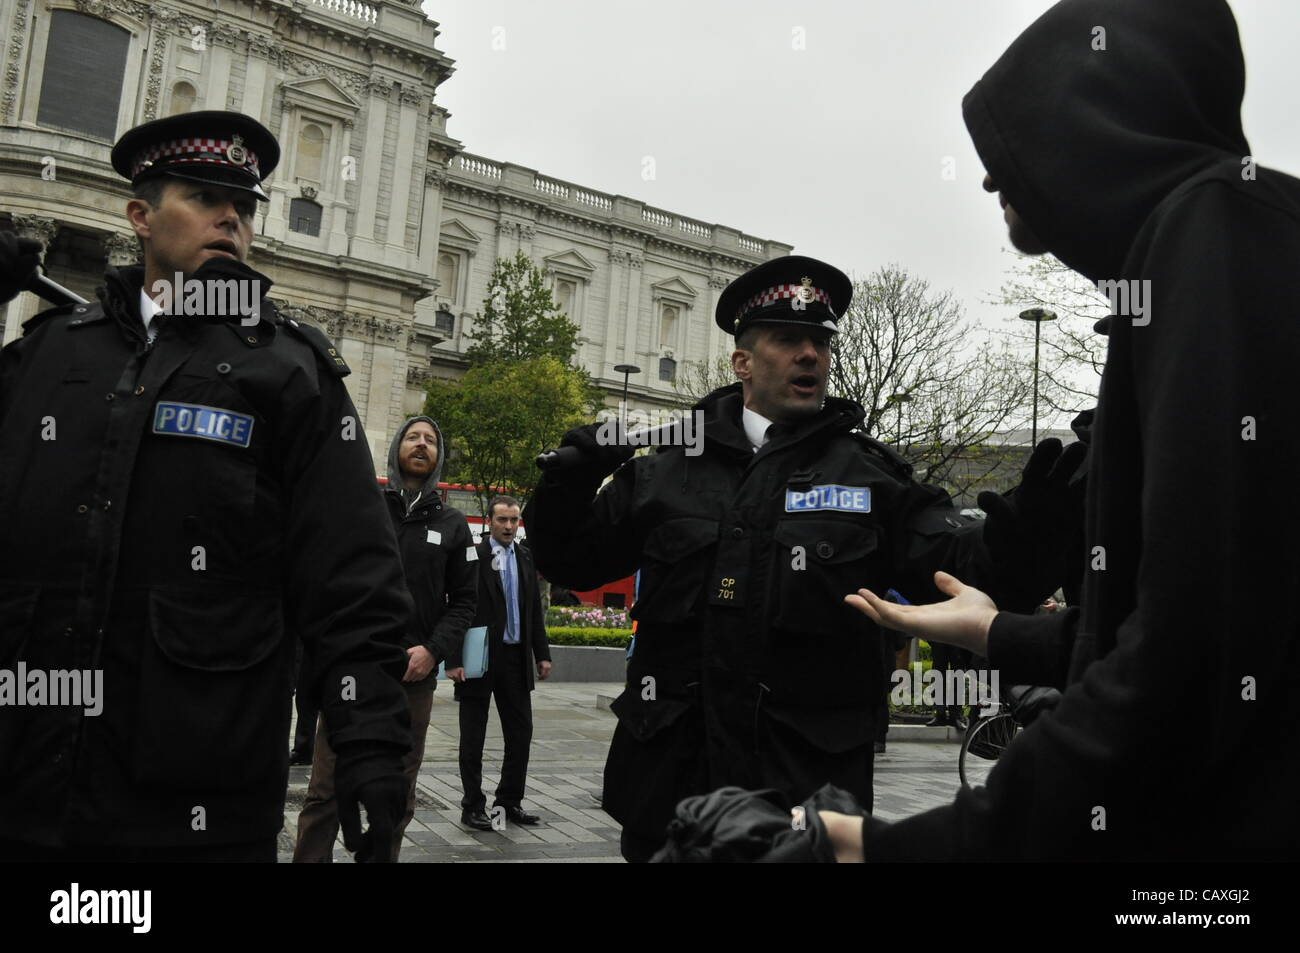 03 May 2012 Carter Lane Gardens, London UK. Policemen wield their batons at a protester during the UK energy summit - Stock Image